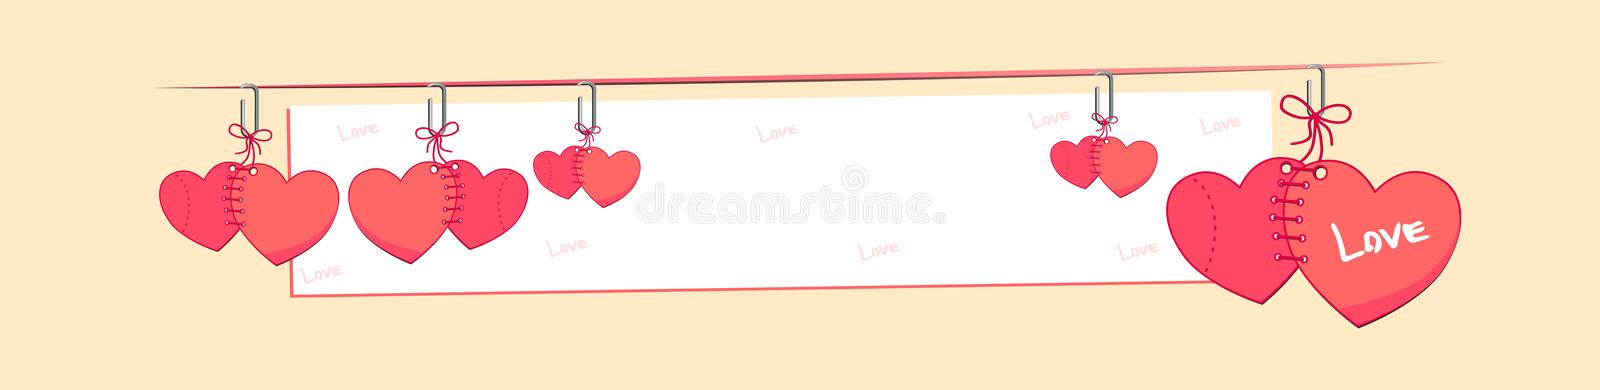 Banner Love. Happy valentines day. Be My Valentine. Valentine card I Love YOU, Be My Valentine. Pink floral backdrop with hearts. Vector illustration happy vector illustration